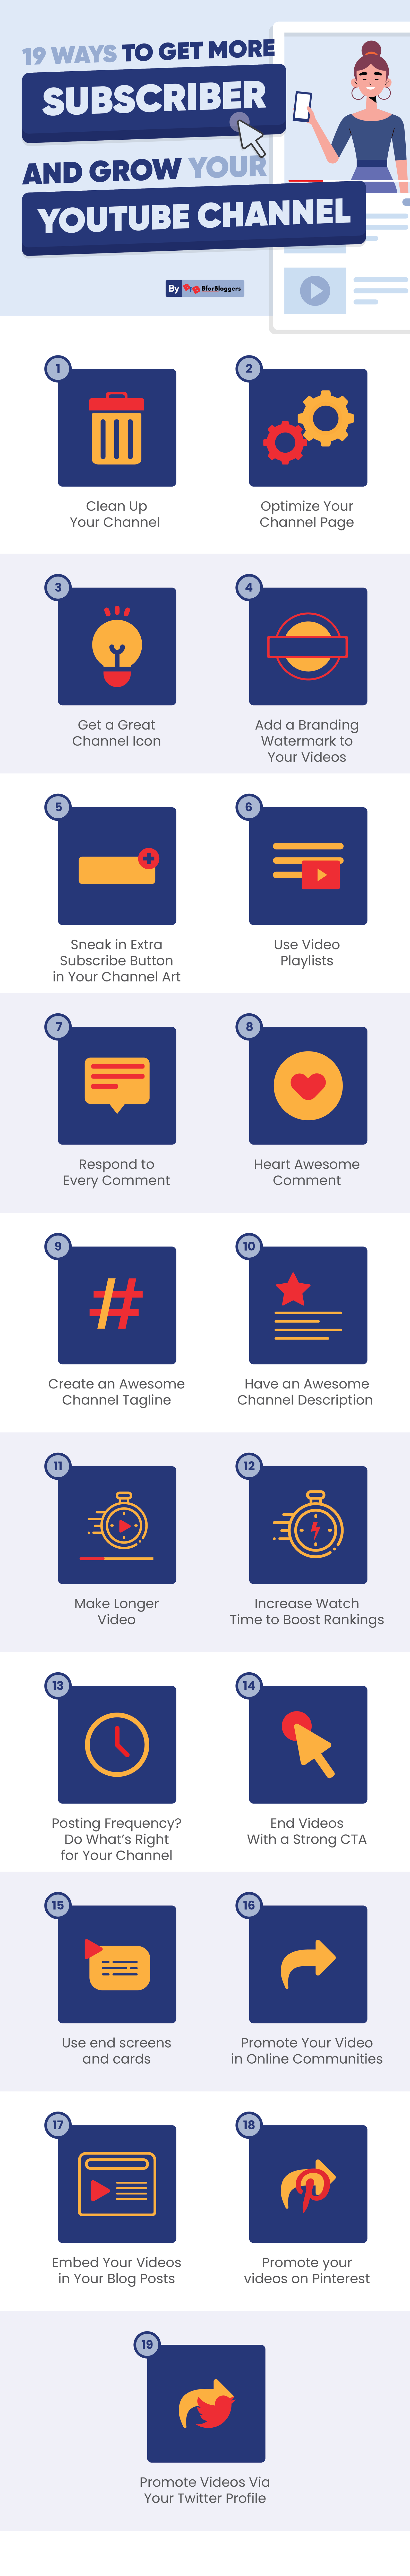 Startegies-to-get-more-youtube-subscribers-infographic